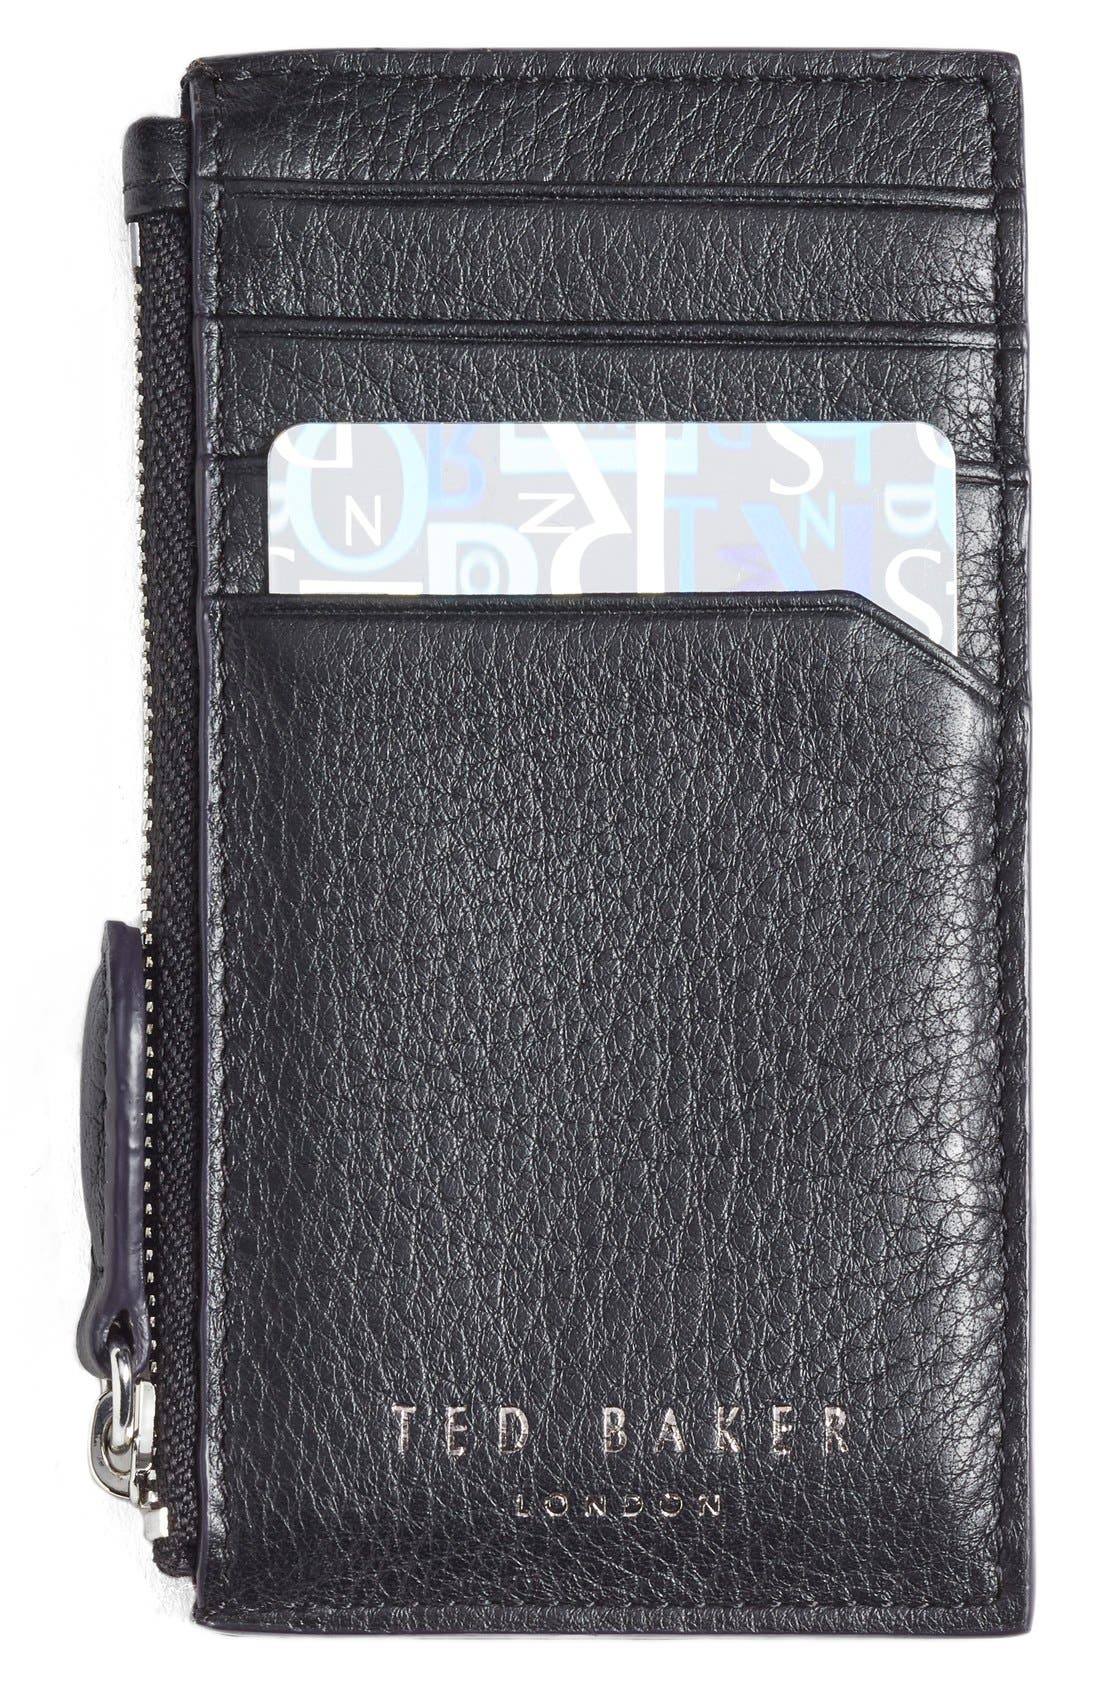 Main Image - Ted Baker London 'Longzip' Card & Coin Case